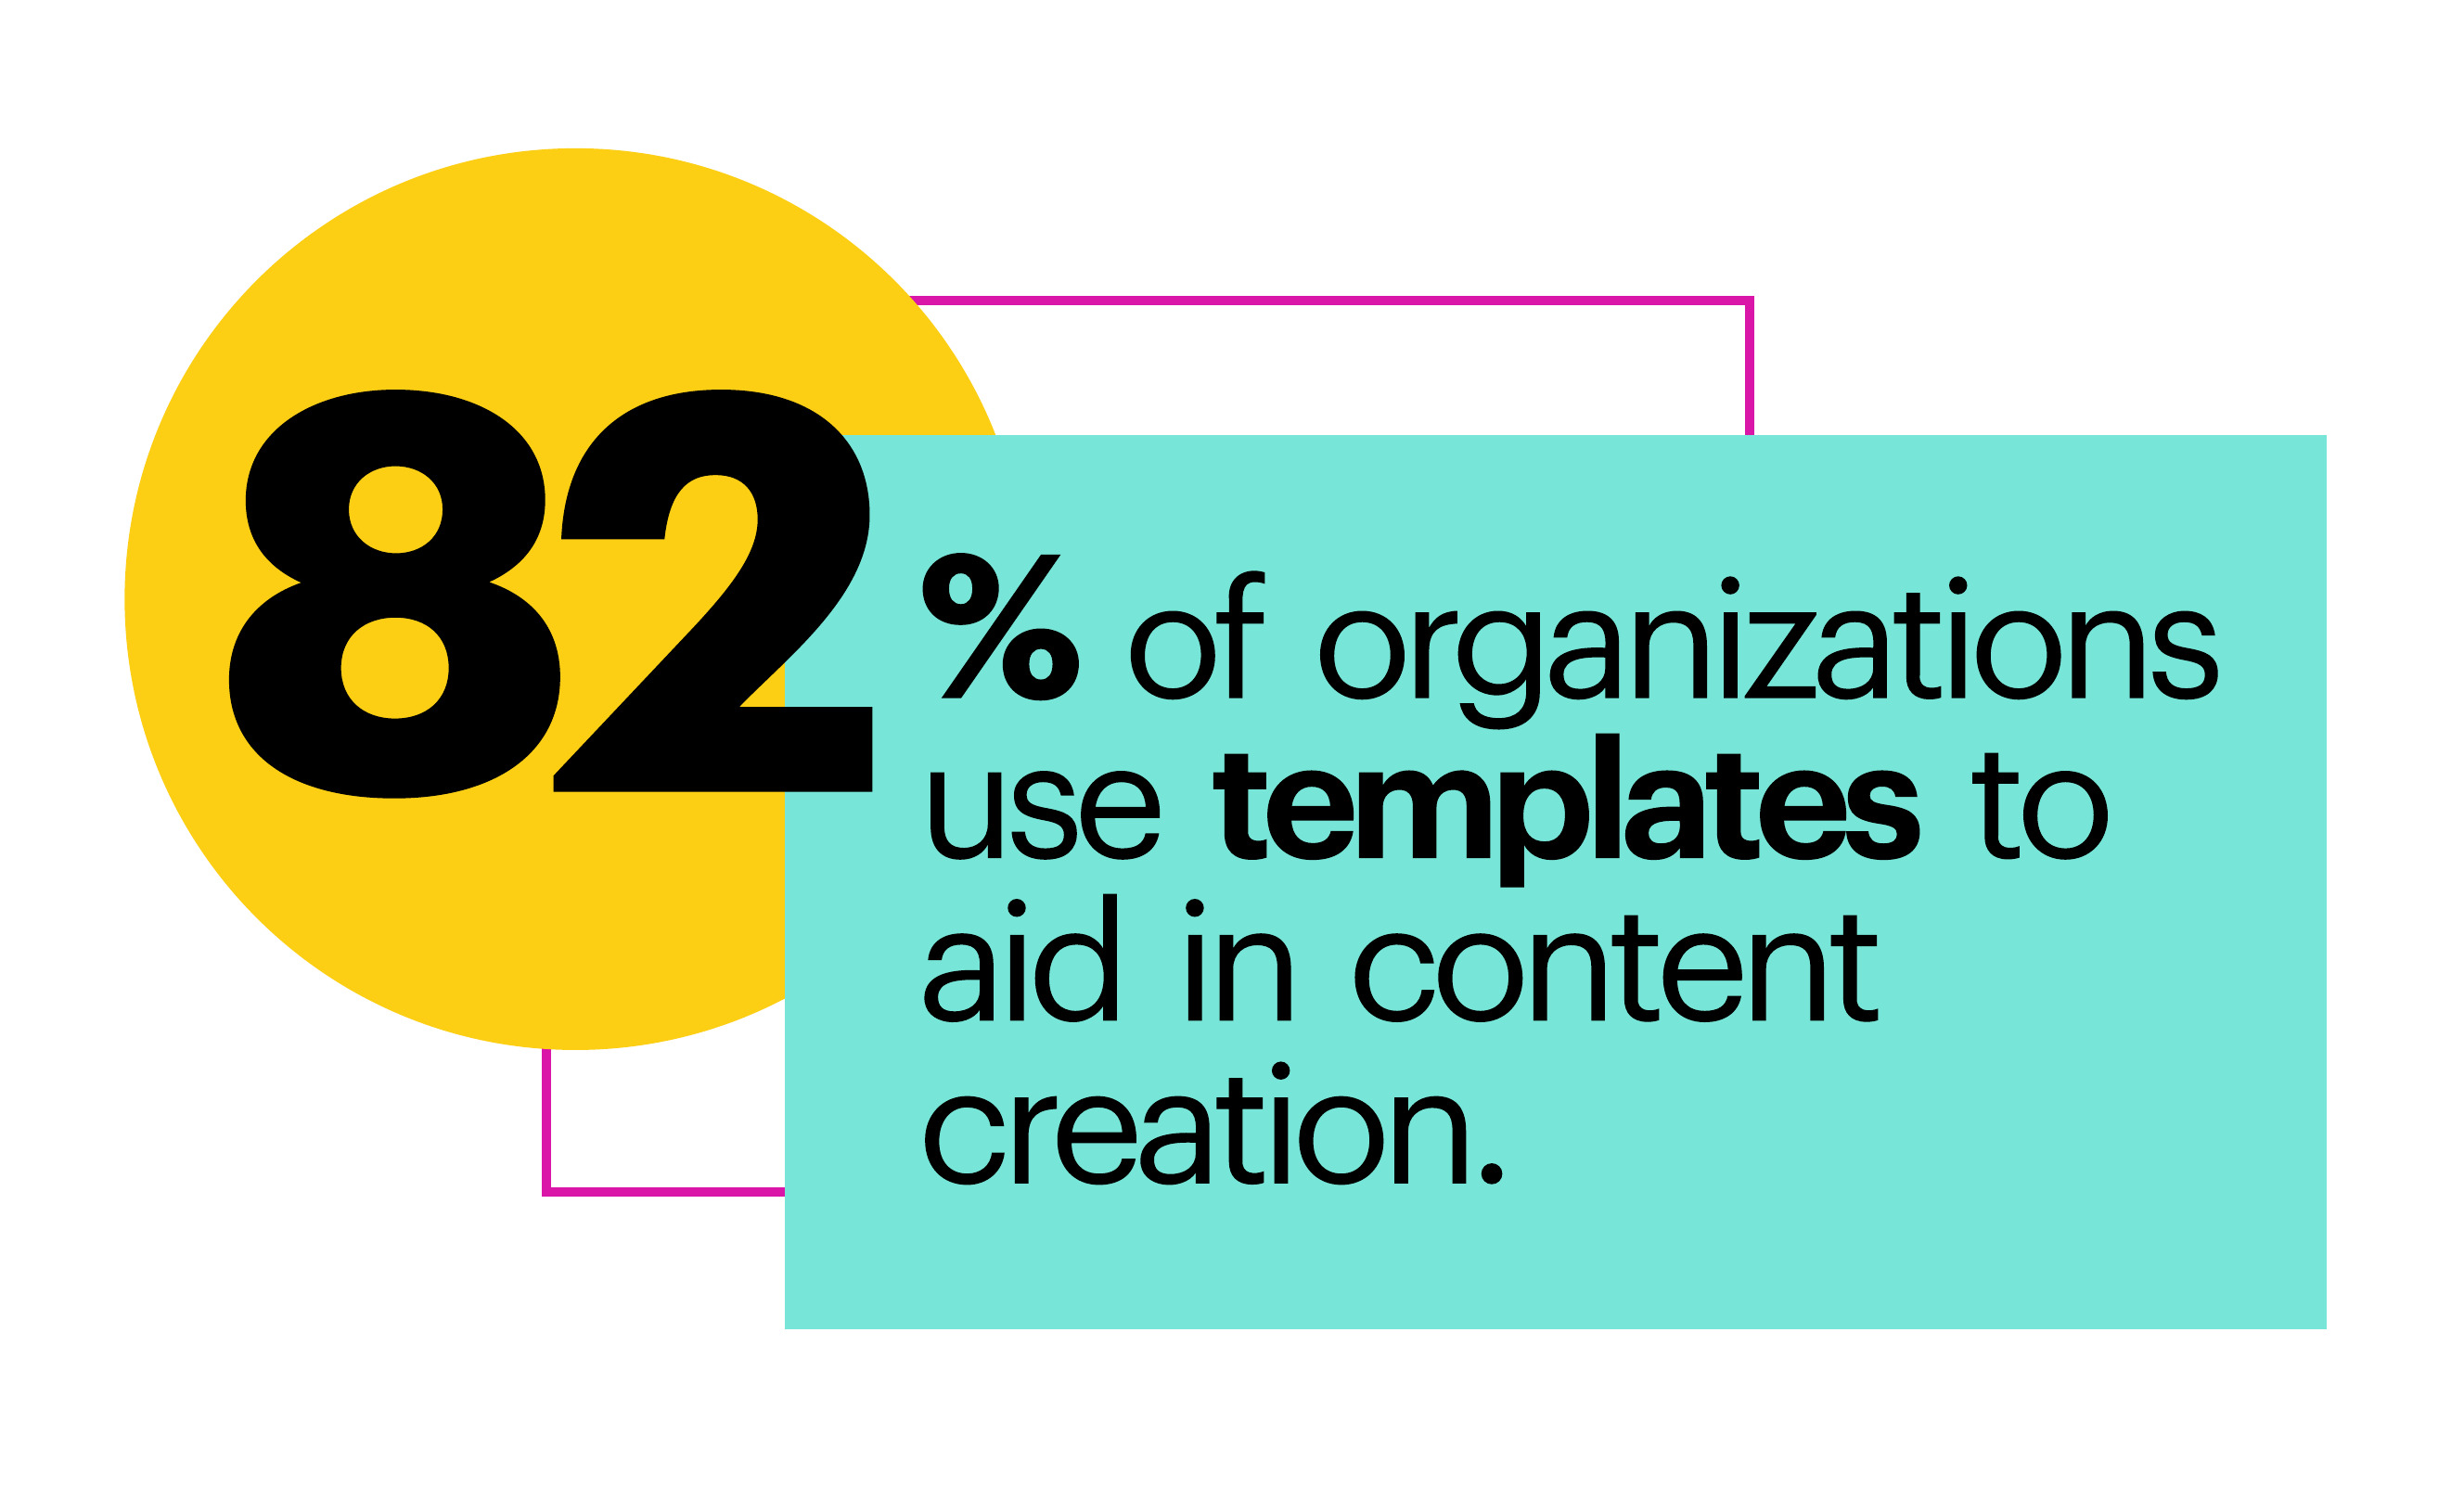 82% of organizations use templates to aid in content creation.